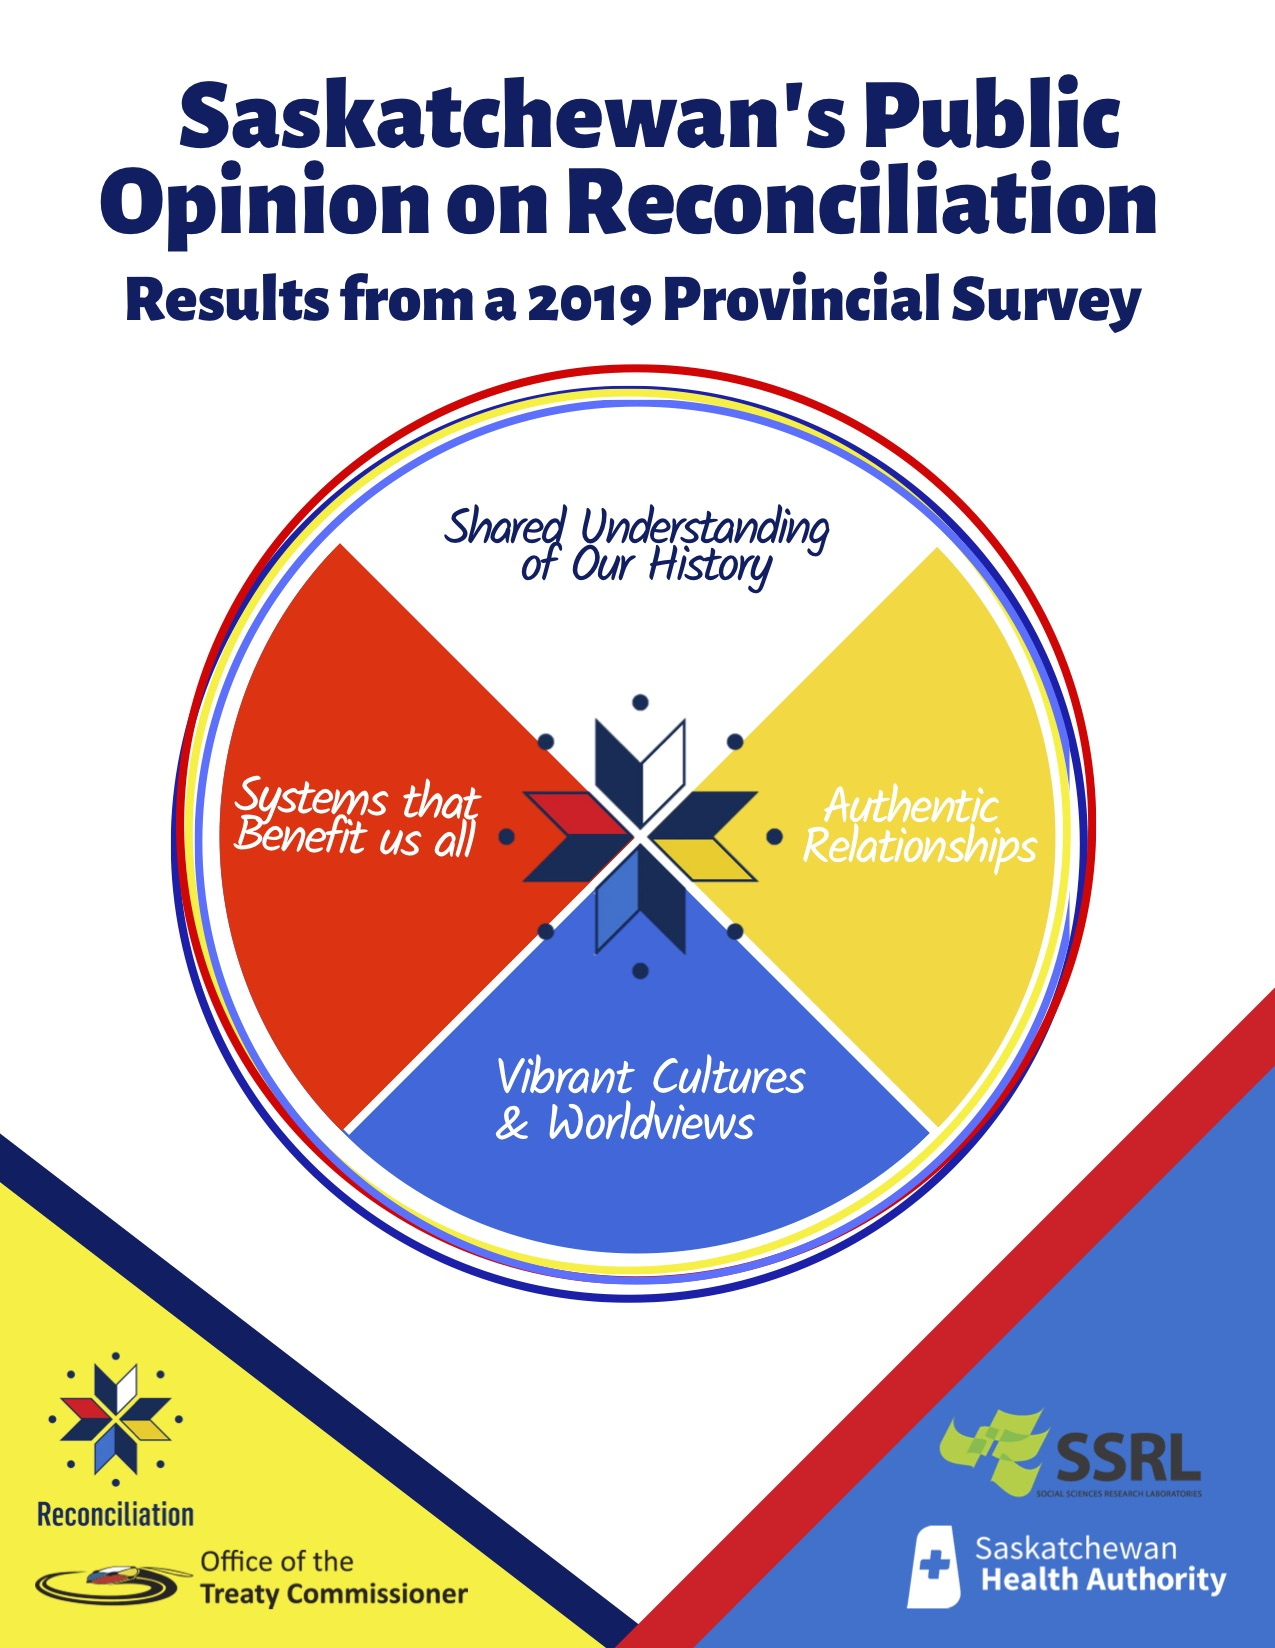 Saskatchewan's Public Opinion on Reconciliation